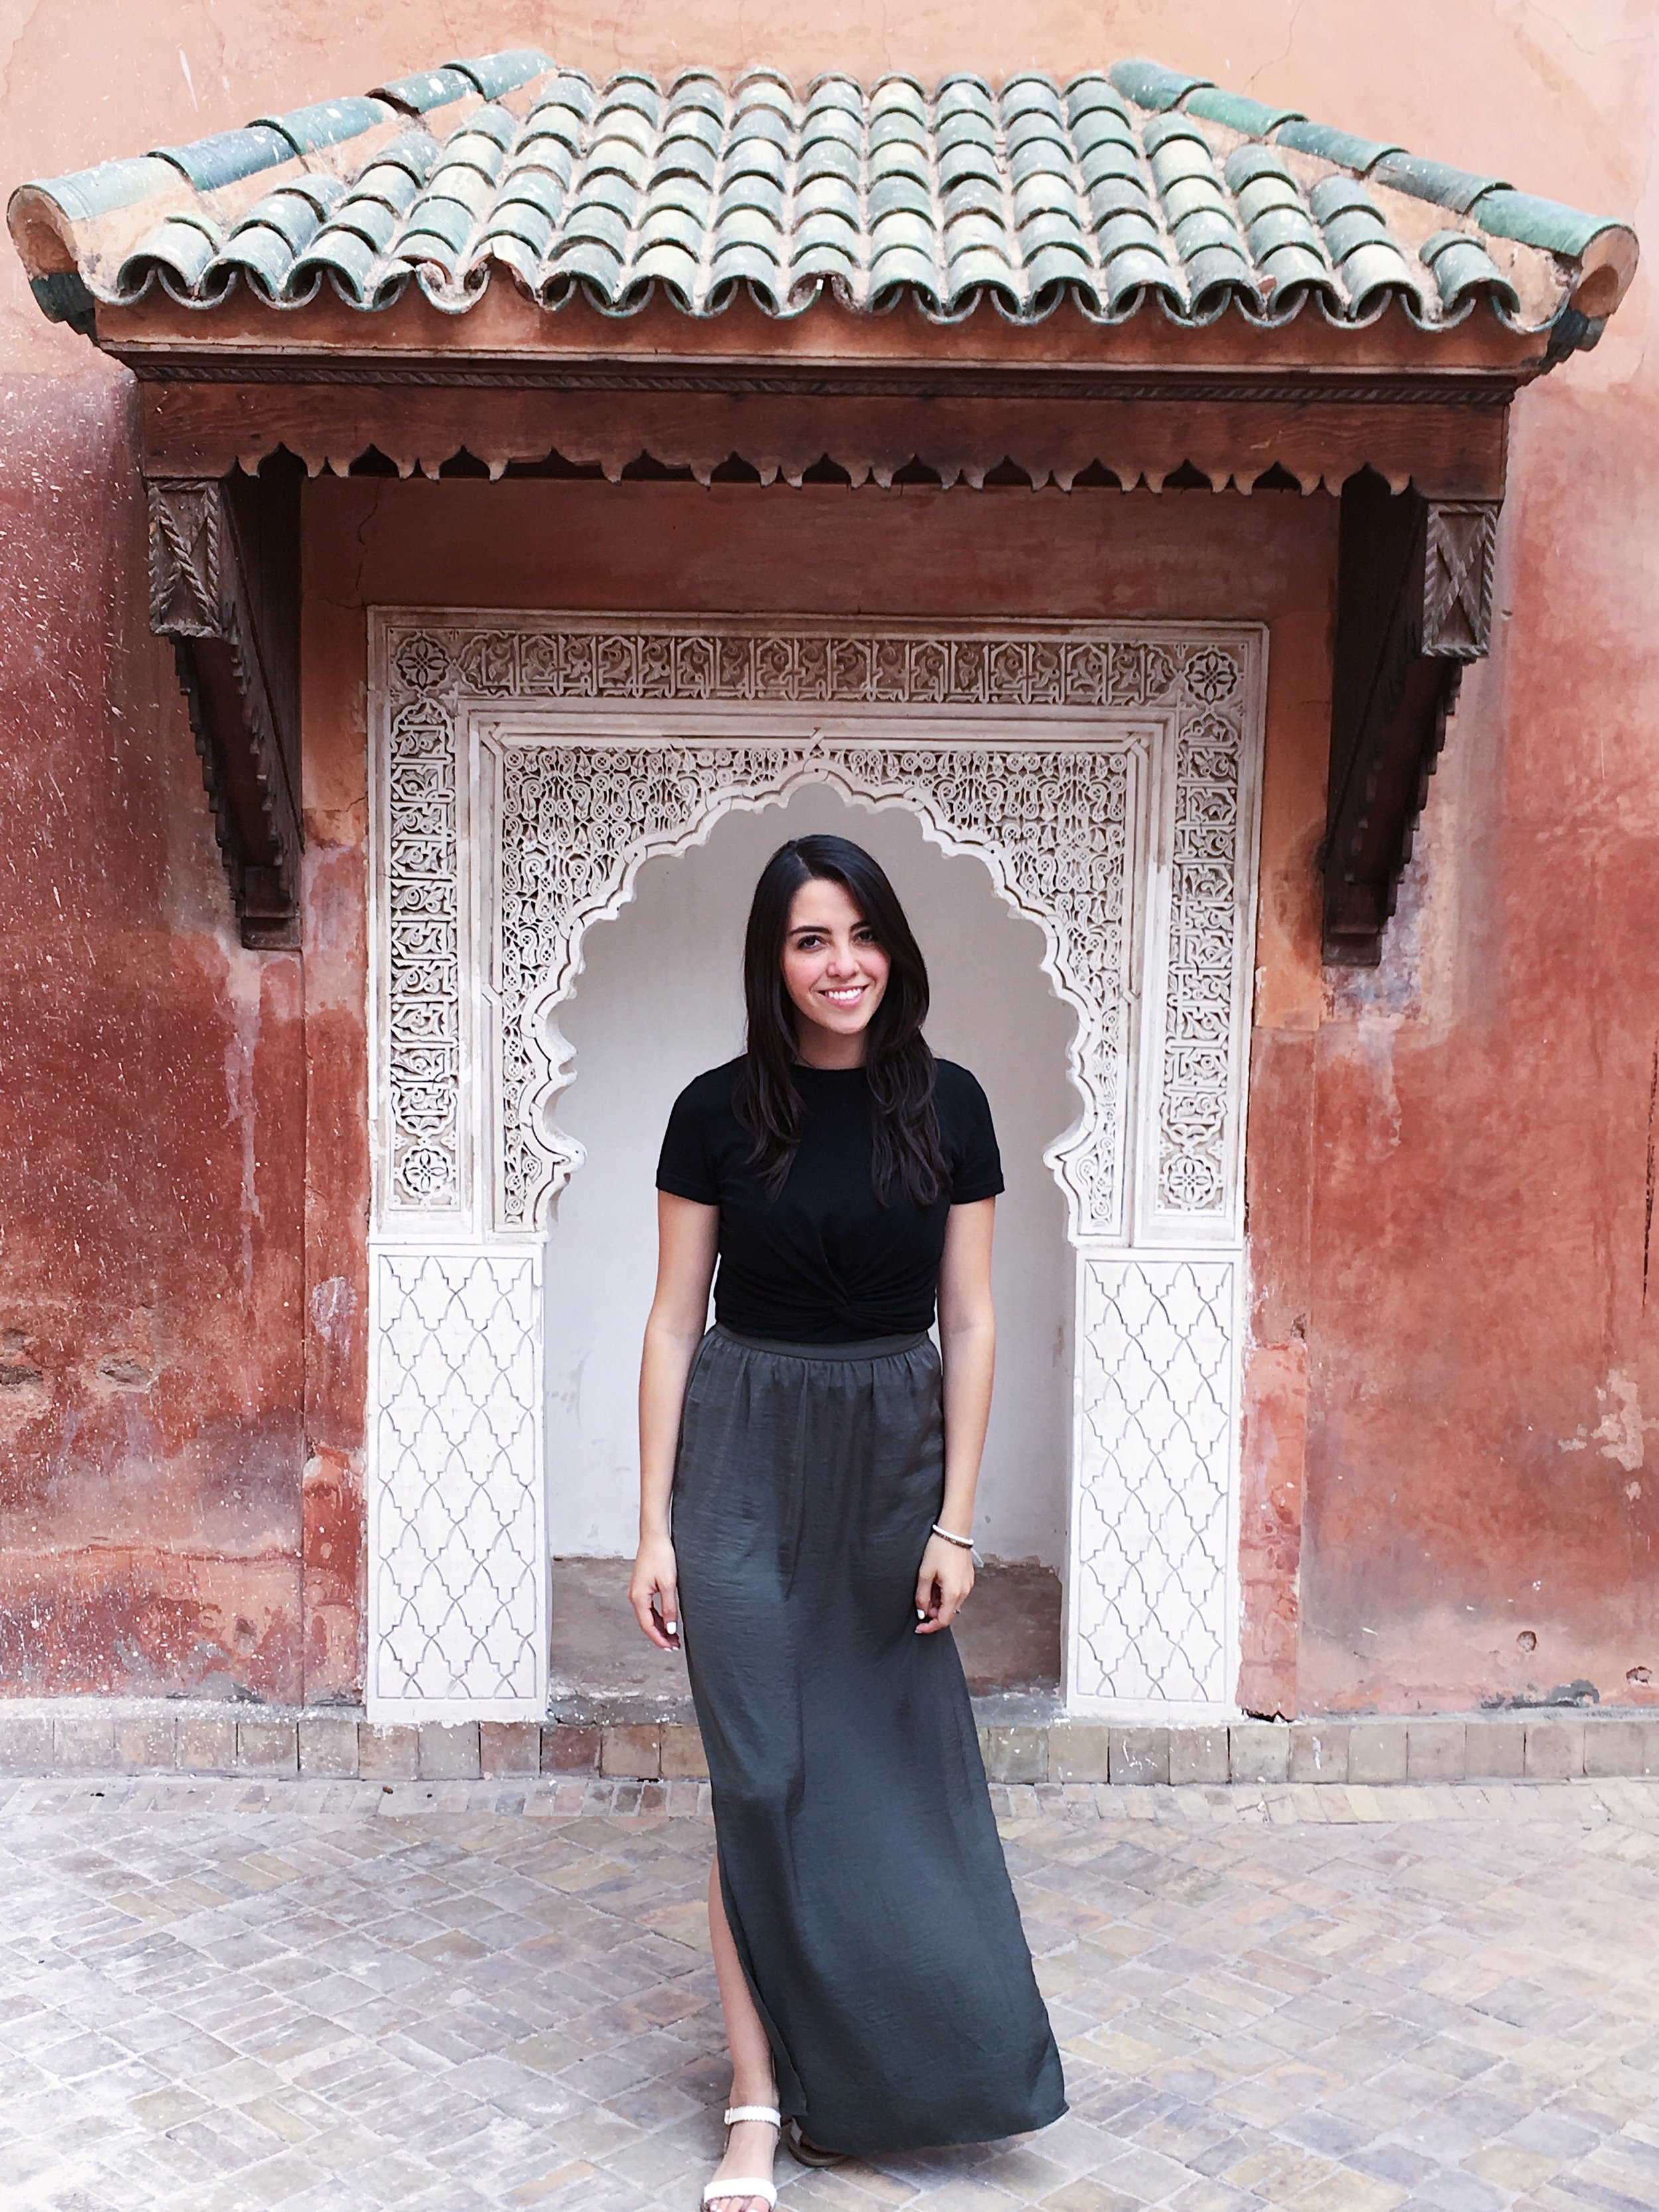 Karlabeetravels_Marrakech_Outfit1.JPG